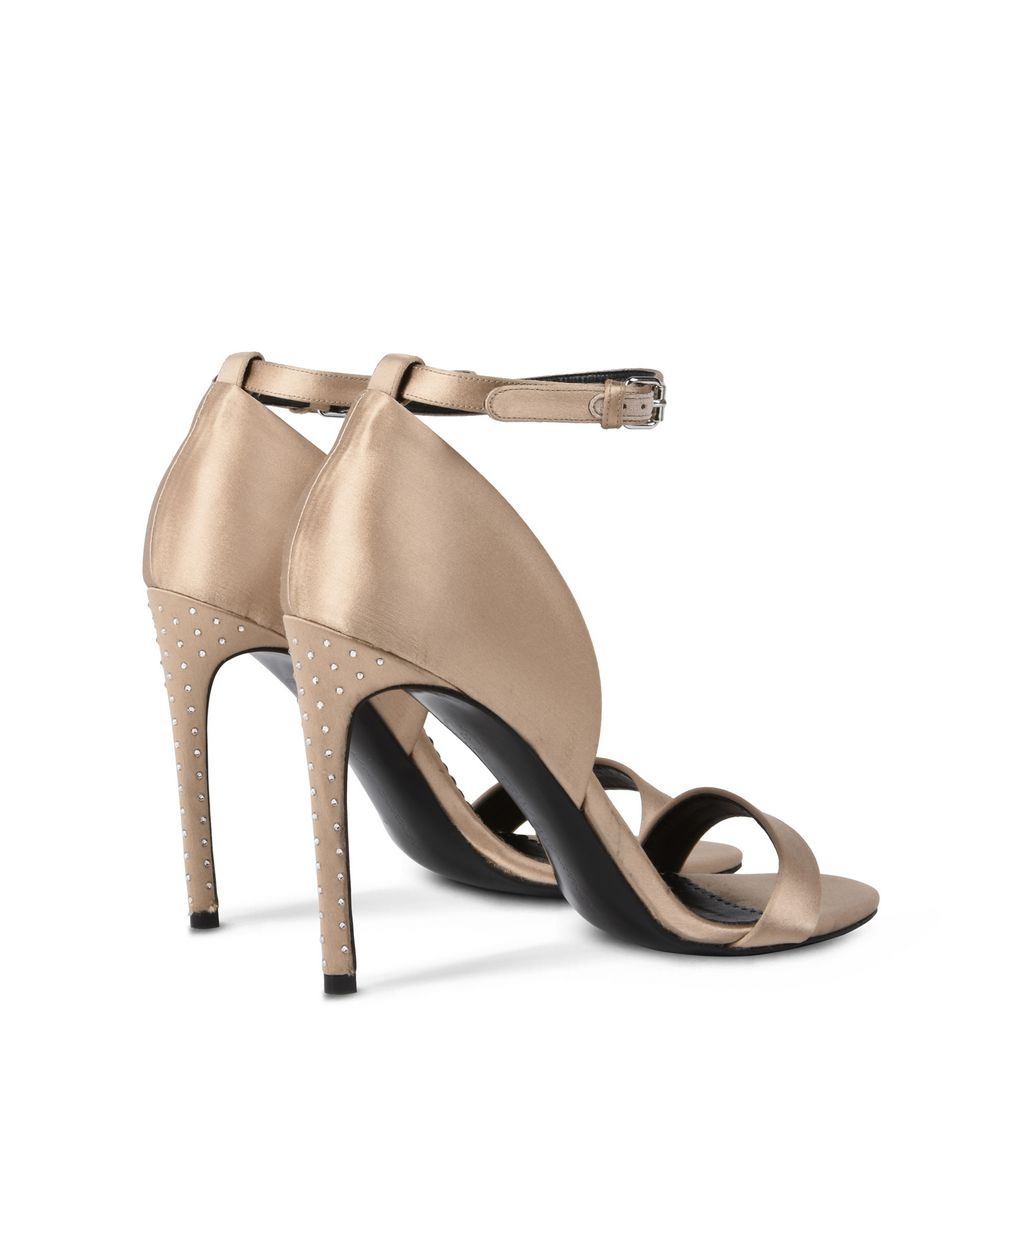 Silk Satin Sandals  - STELLA MCCARTNEY